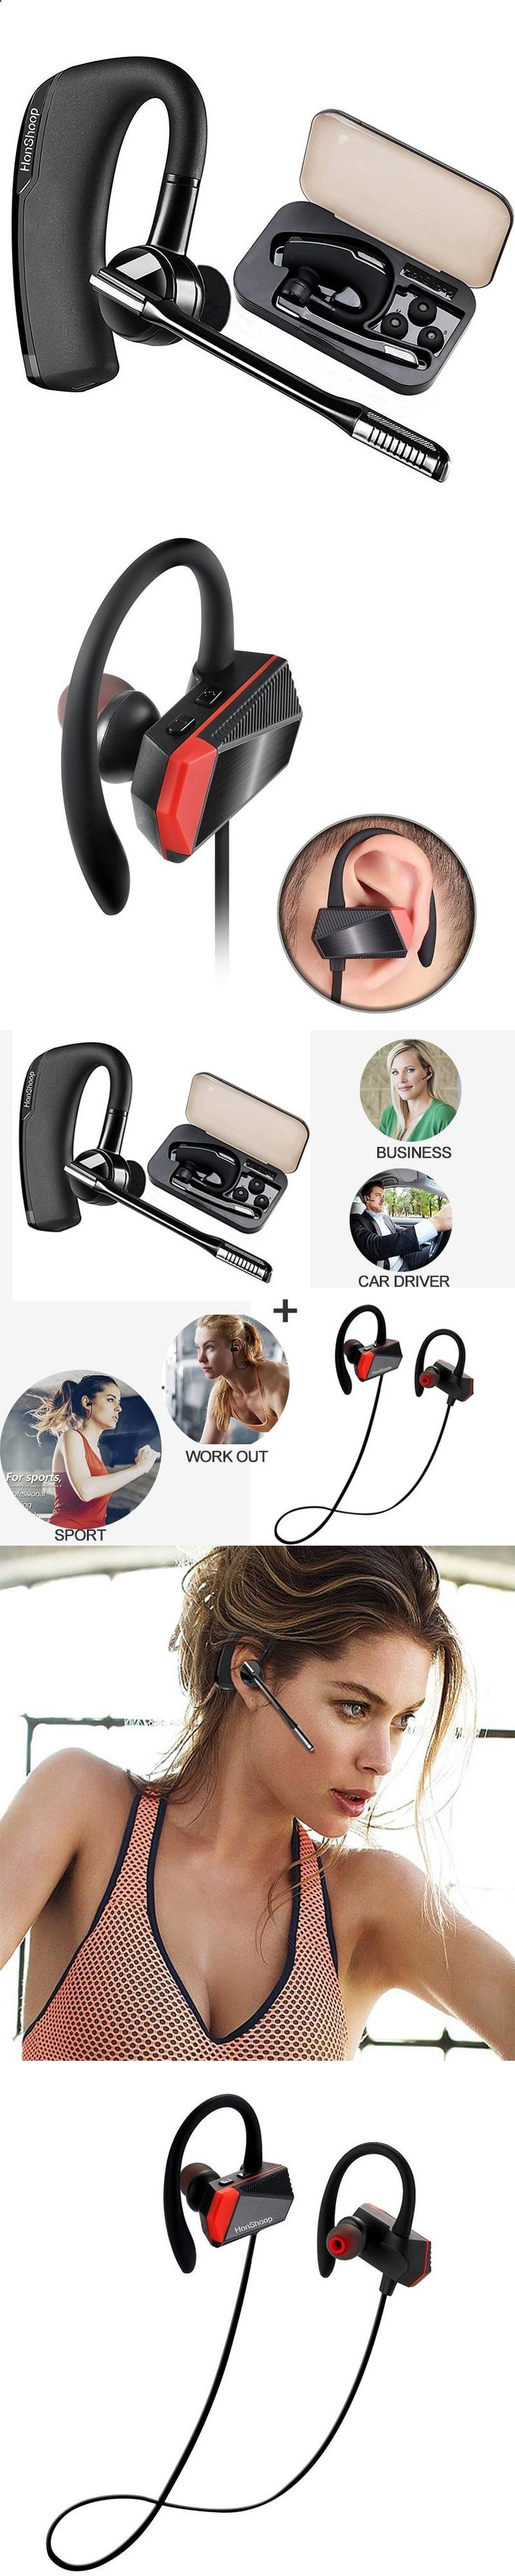 Sports Headphones - bluetooth earphones Car Driver Bluetooth Headphones Compatible with iPhone bluetooth Workout Earphones Sport headphones - If you usually go out to run, walk or any other sport in which you usually carry music to accompany or motivate you, we have selected 13 models of sports headphones that we consider among the best in the market for different aspects, from comfort to use to design, sound quality or value for money, so that you find variety and can adjust the model...